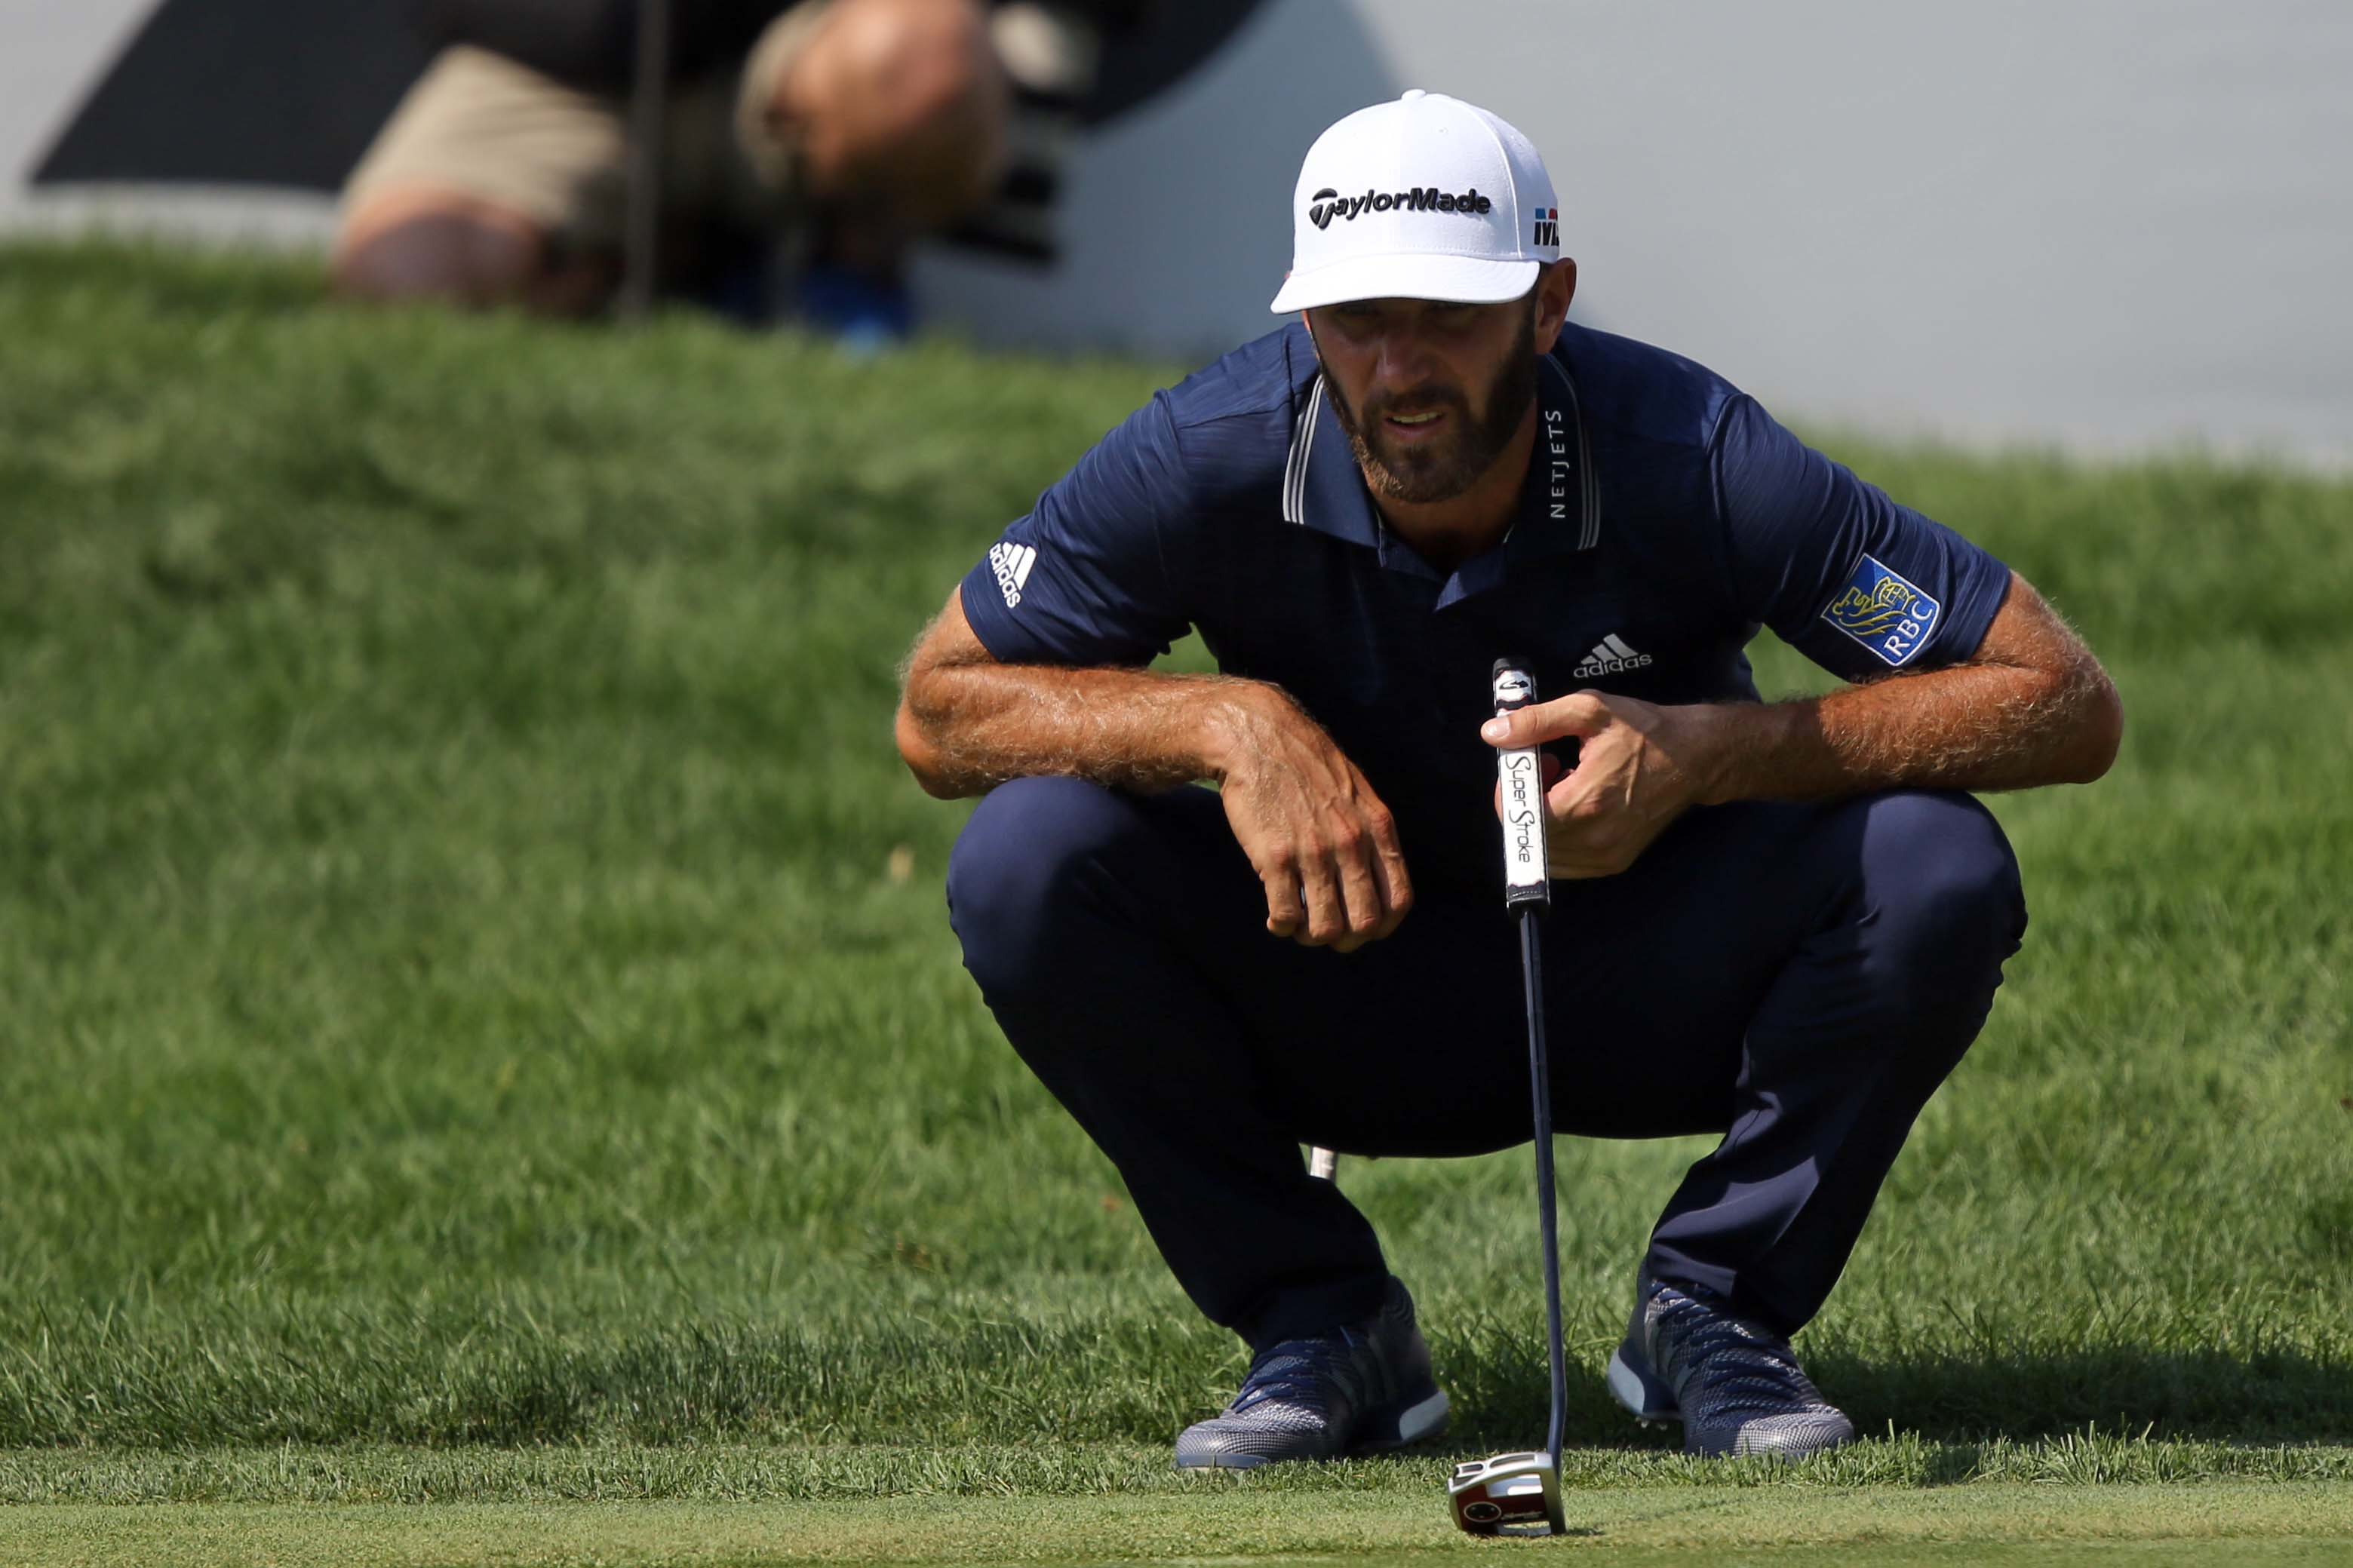 Aug 5, 2018; Akron, OH, USA; Dustin Johnson lines up a putt on the 18th green during the final round of the WGC - Bridgestone Invitational golf tournament at Firestone Country Club - South Course. Mandatory Credit: Aaron Doster-USA TODAY Sports